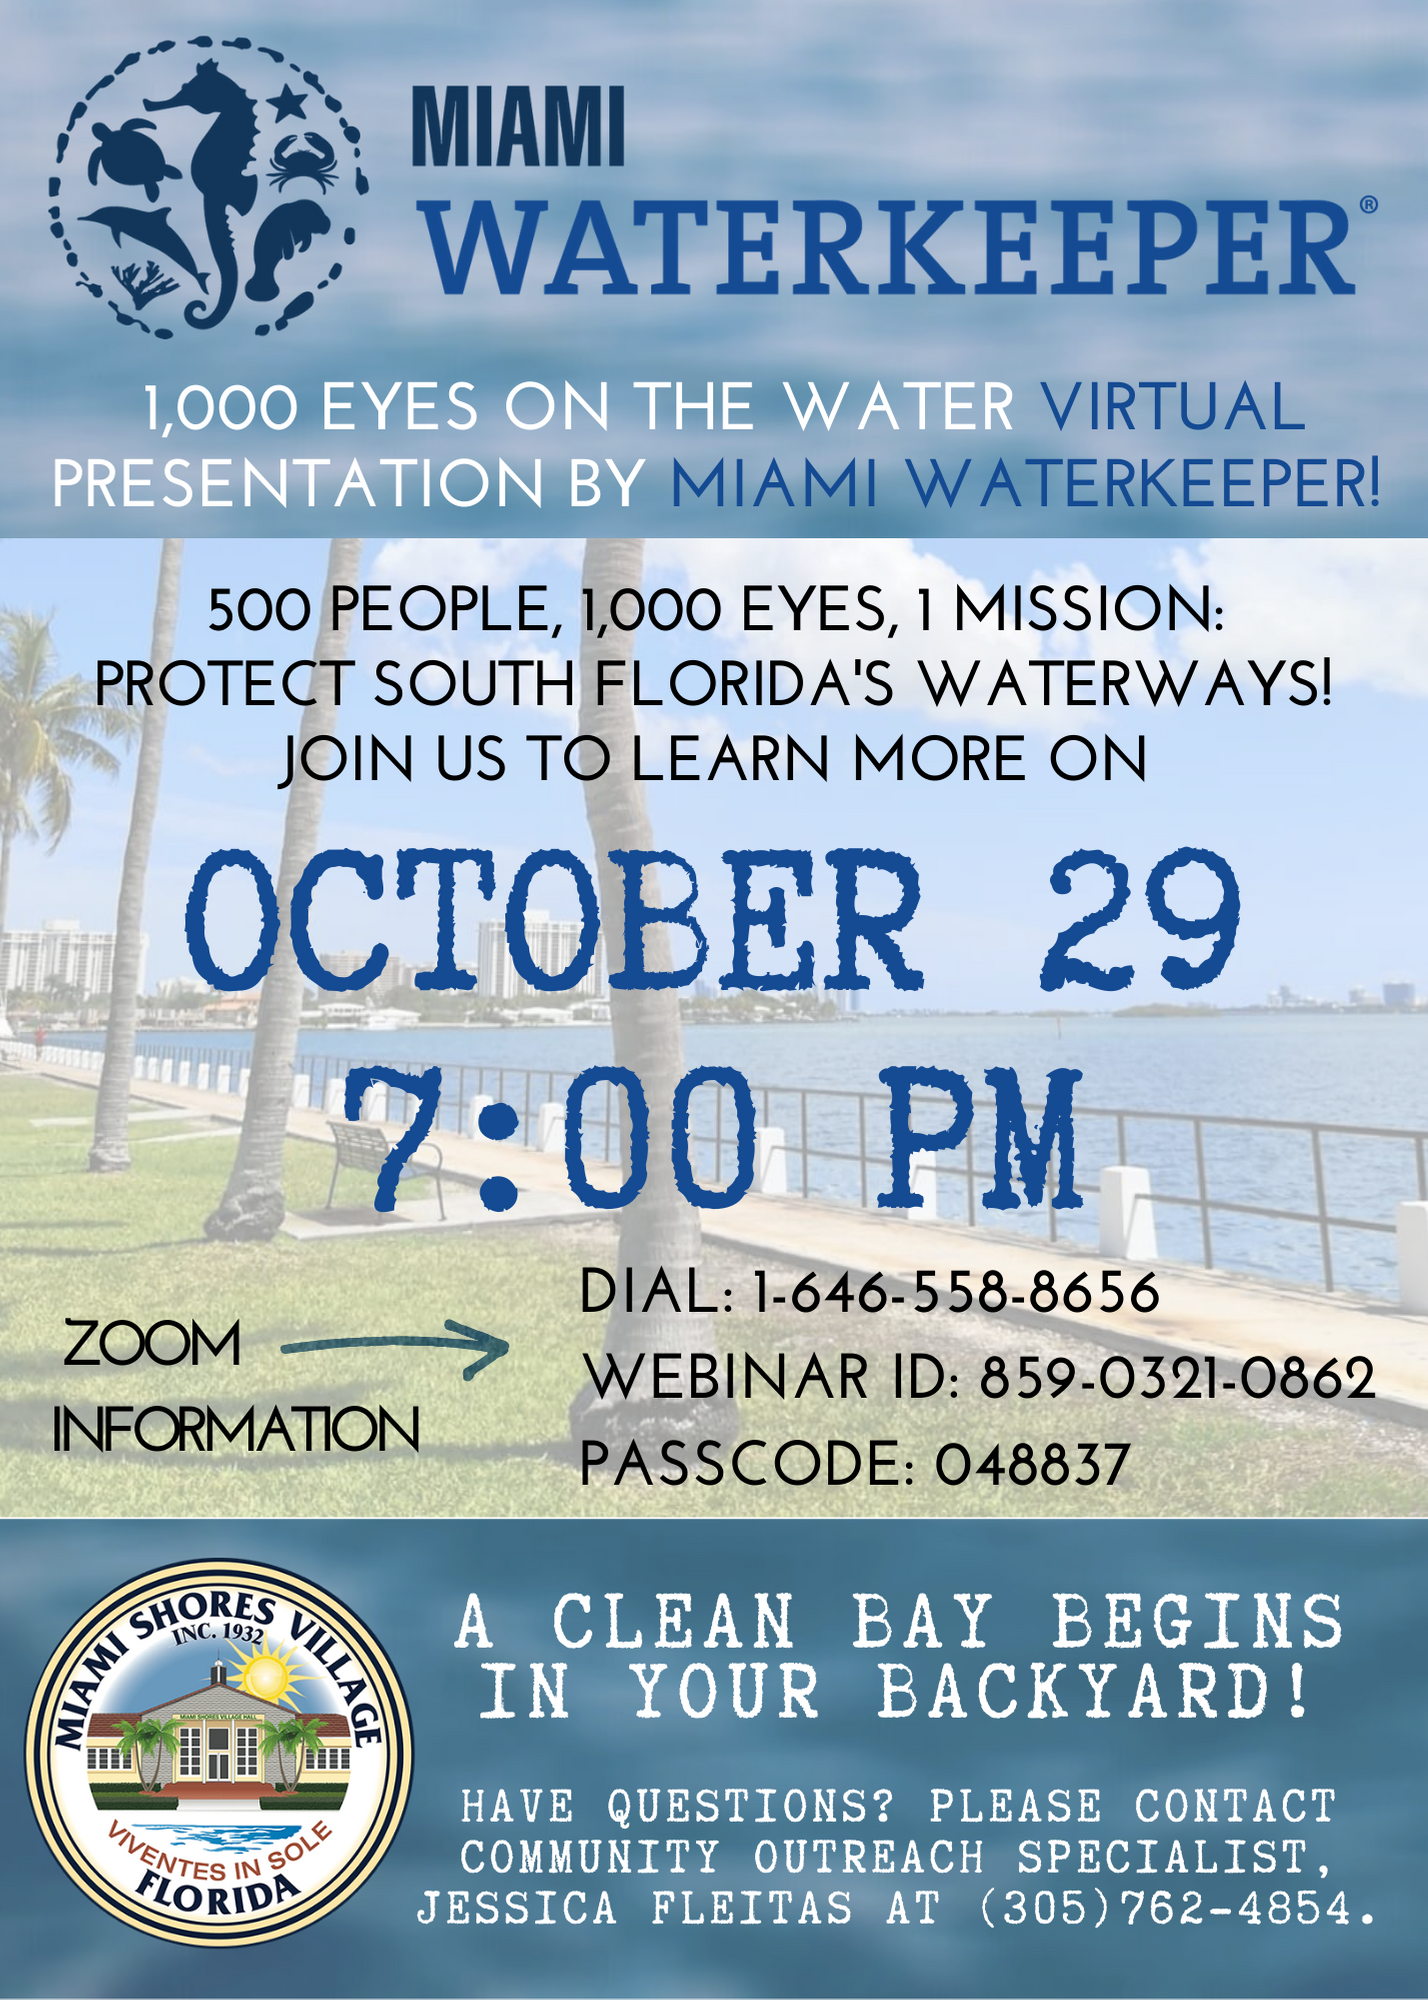 Miami Waterkeeper Virtual Presentation (1).png (2.89 MB)